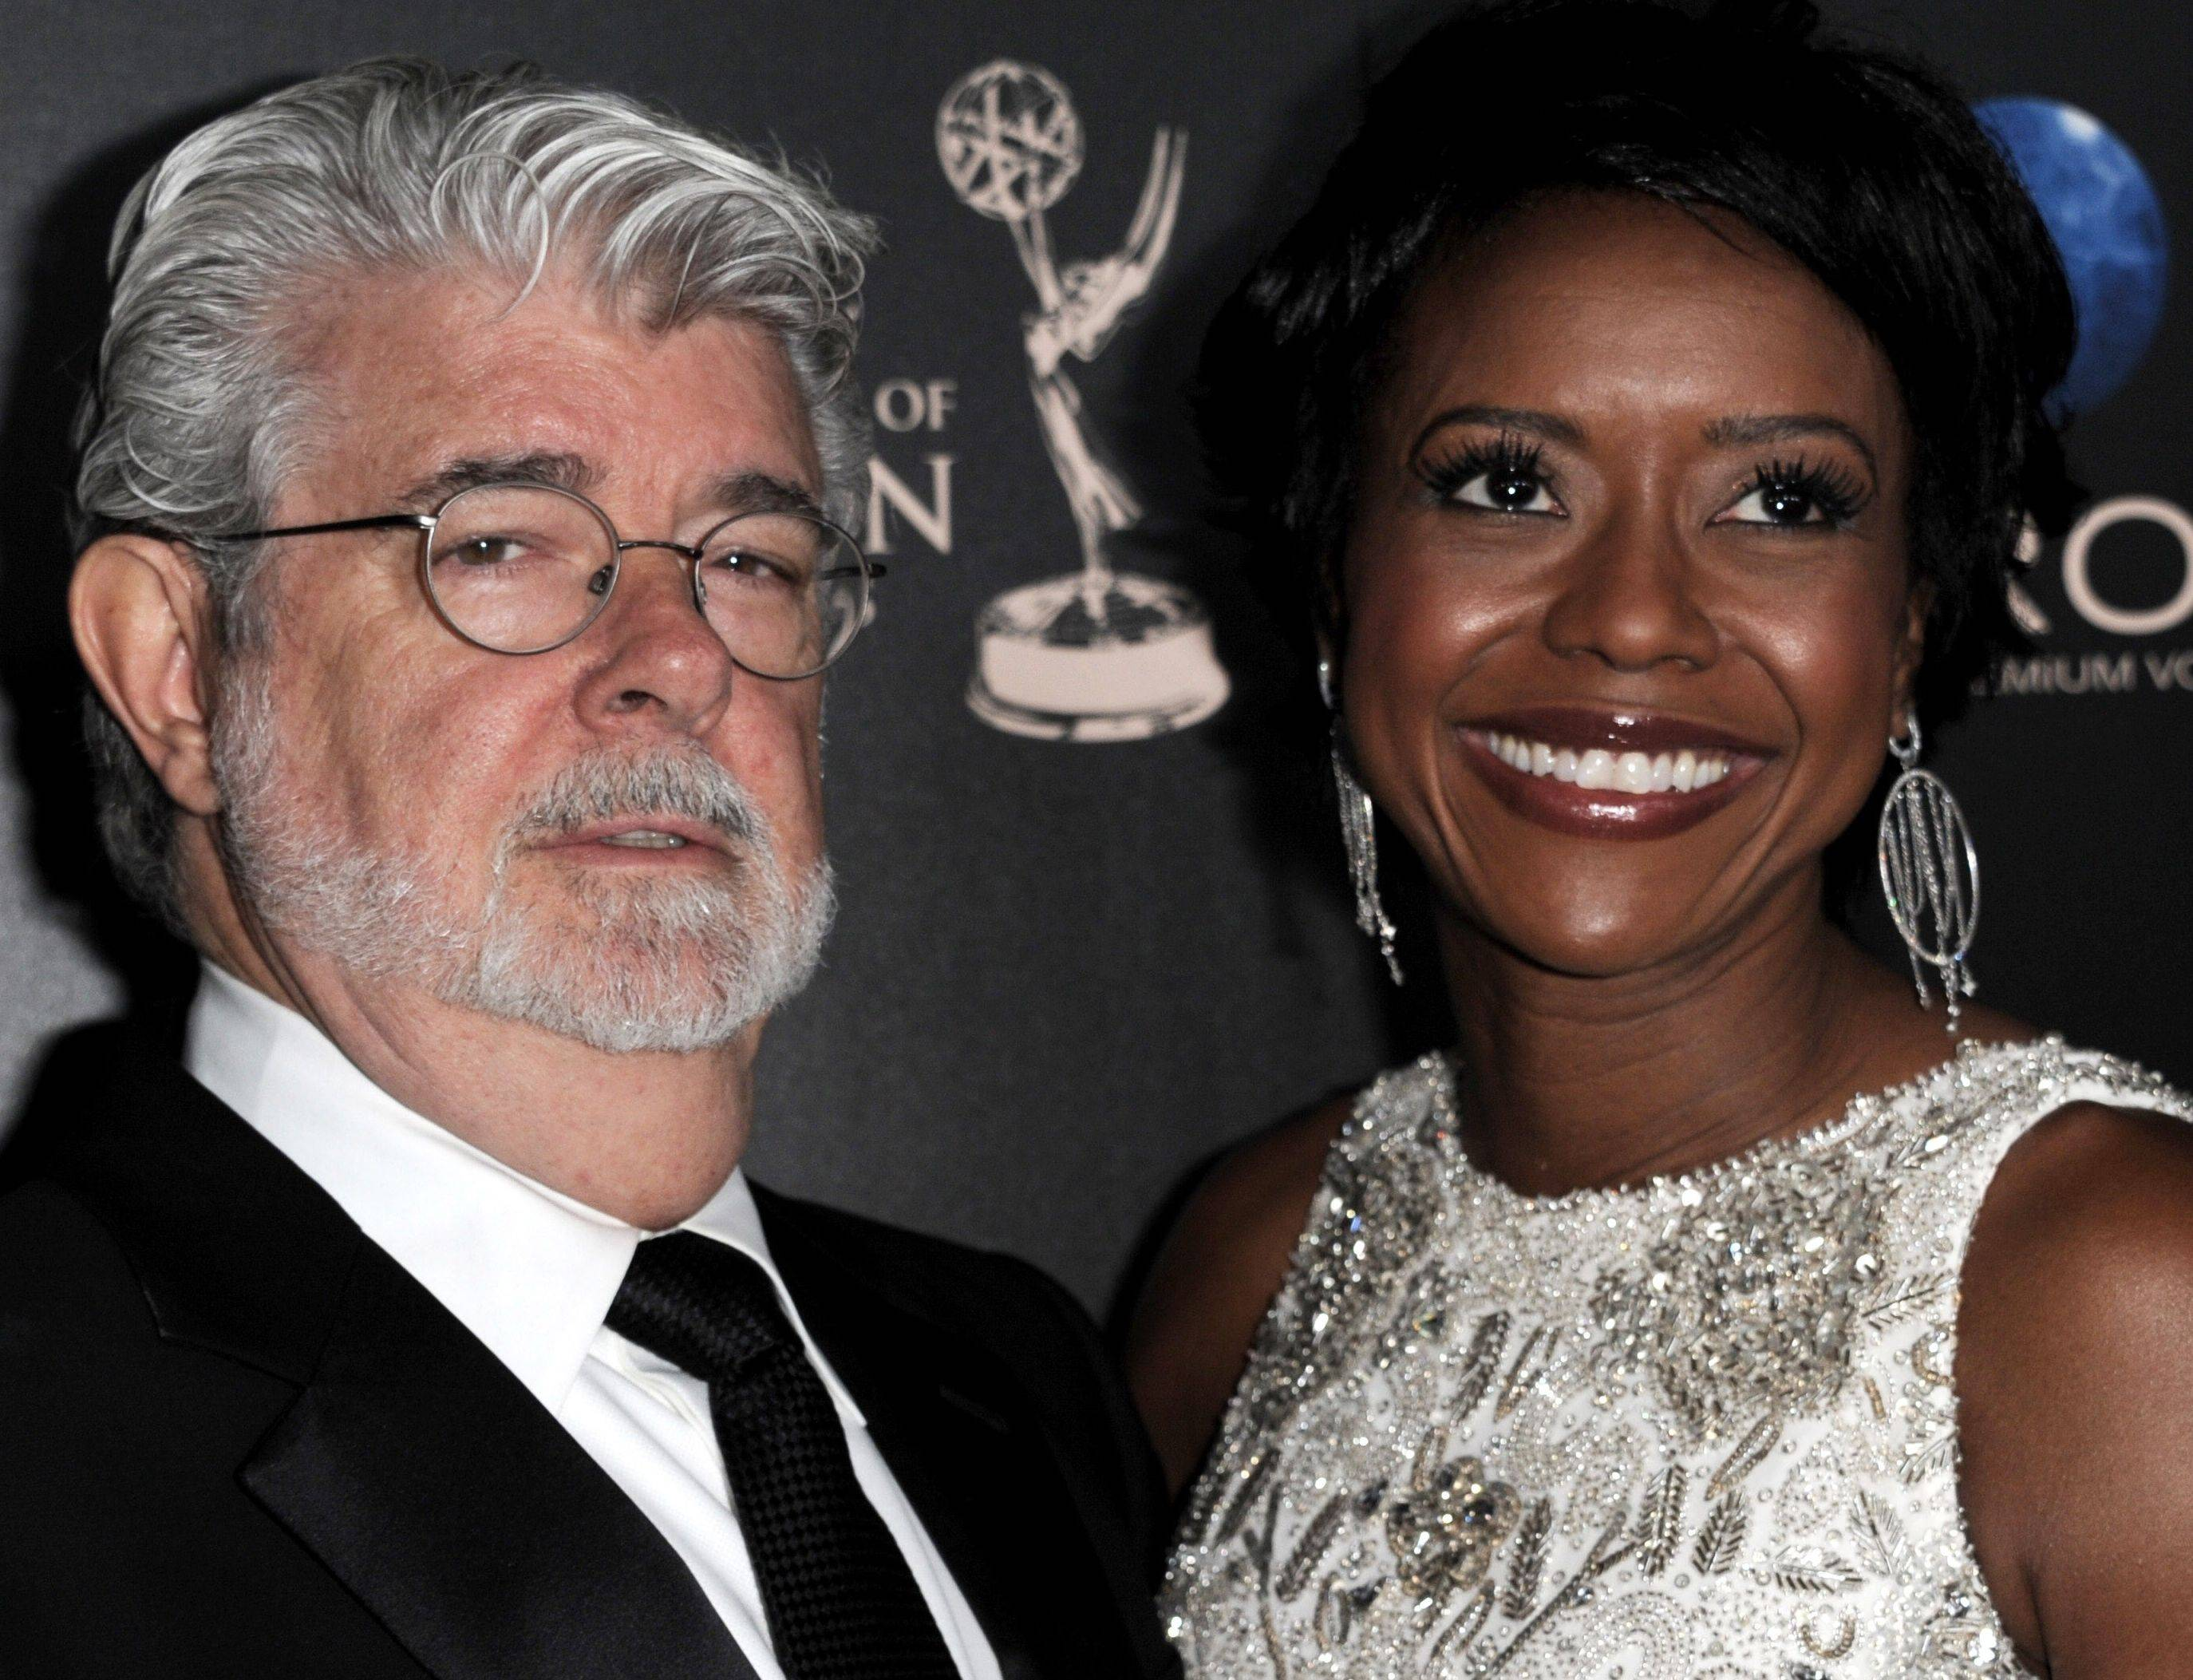 In this June 16, 2013 file photo, George Lucas, left, and longtime girlfriend Mellody Hobson arrive at the 40th Annual Daytime Emmy Awards in Beverly Hills, Calif. A Lucasfilm spokeswoman on Monday confirmed the �Star Wars� creator married Hobson in a weekend ceremony at Skywalker Ranch north of San Francisco.